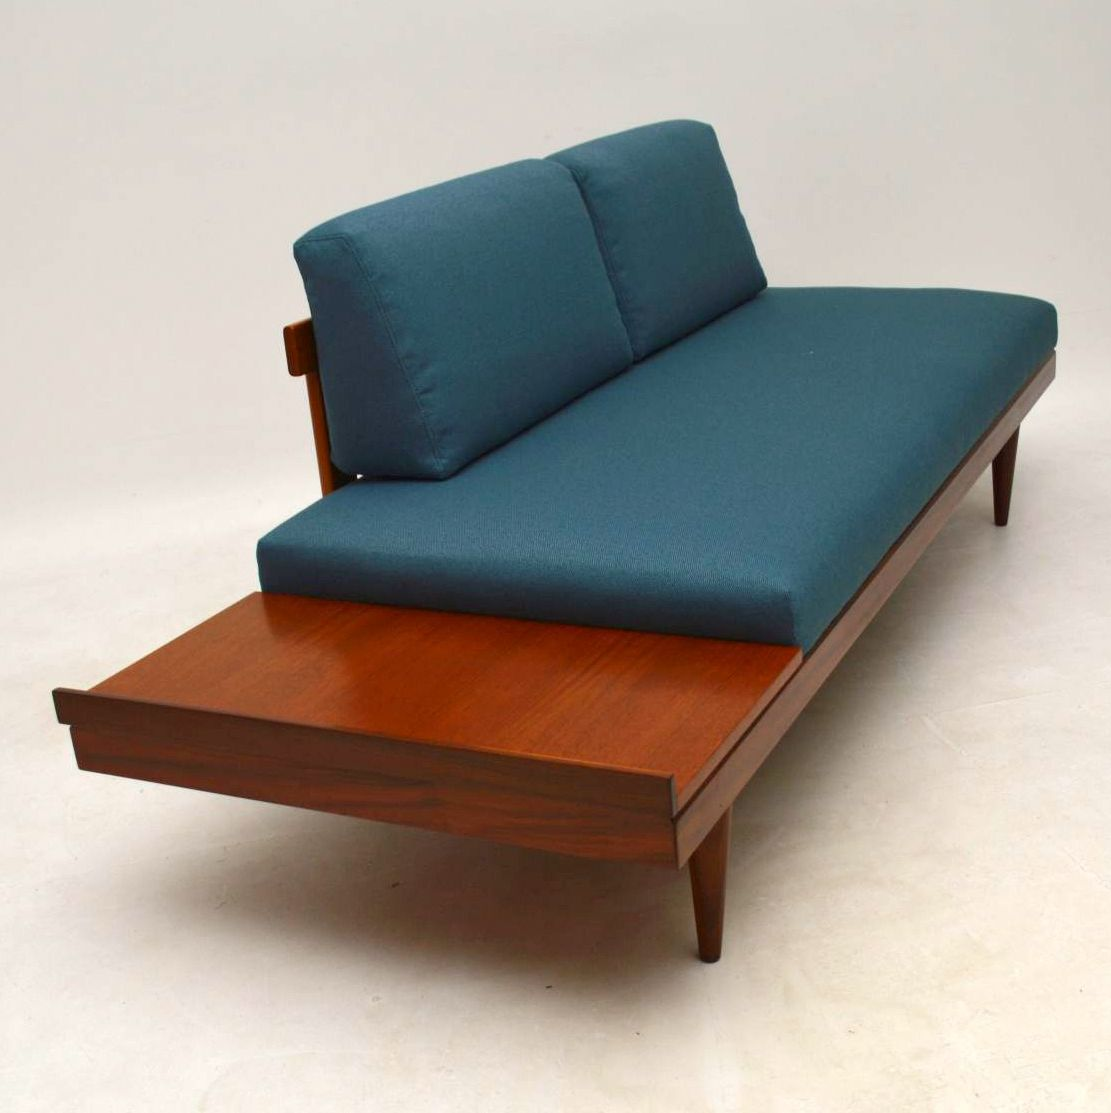 1950 S Vintage Teak Sofa Bed By Ingmar Relling Interior